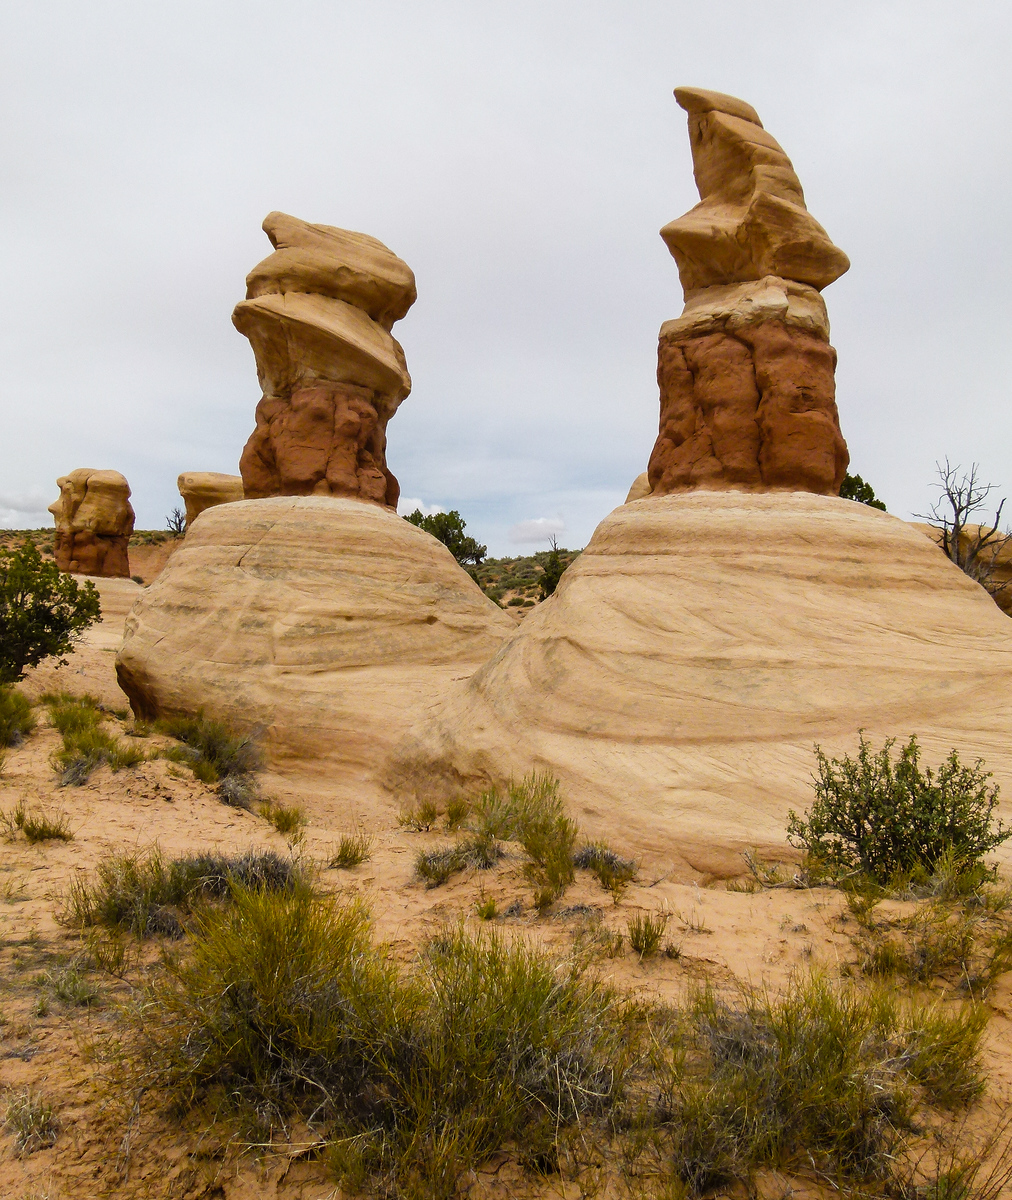 Explore Devils Garden when you drive Highway 12 Scenic Byway near Escalante, Utah.